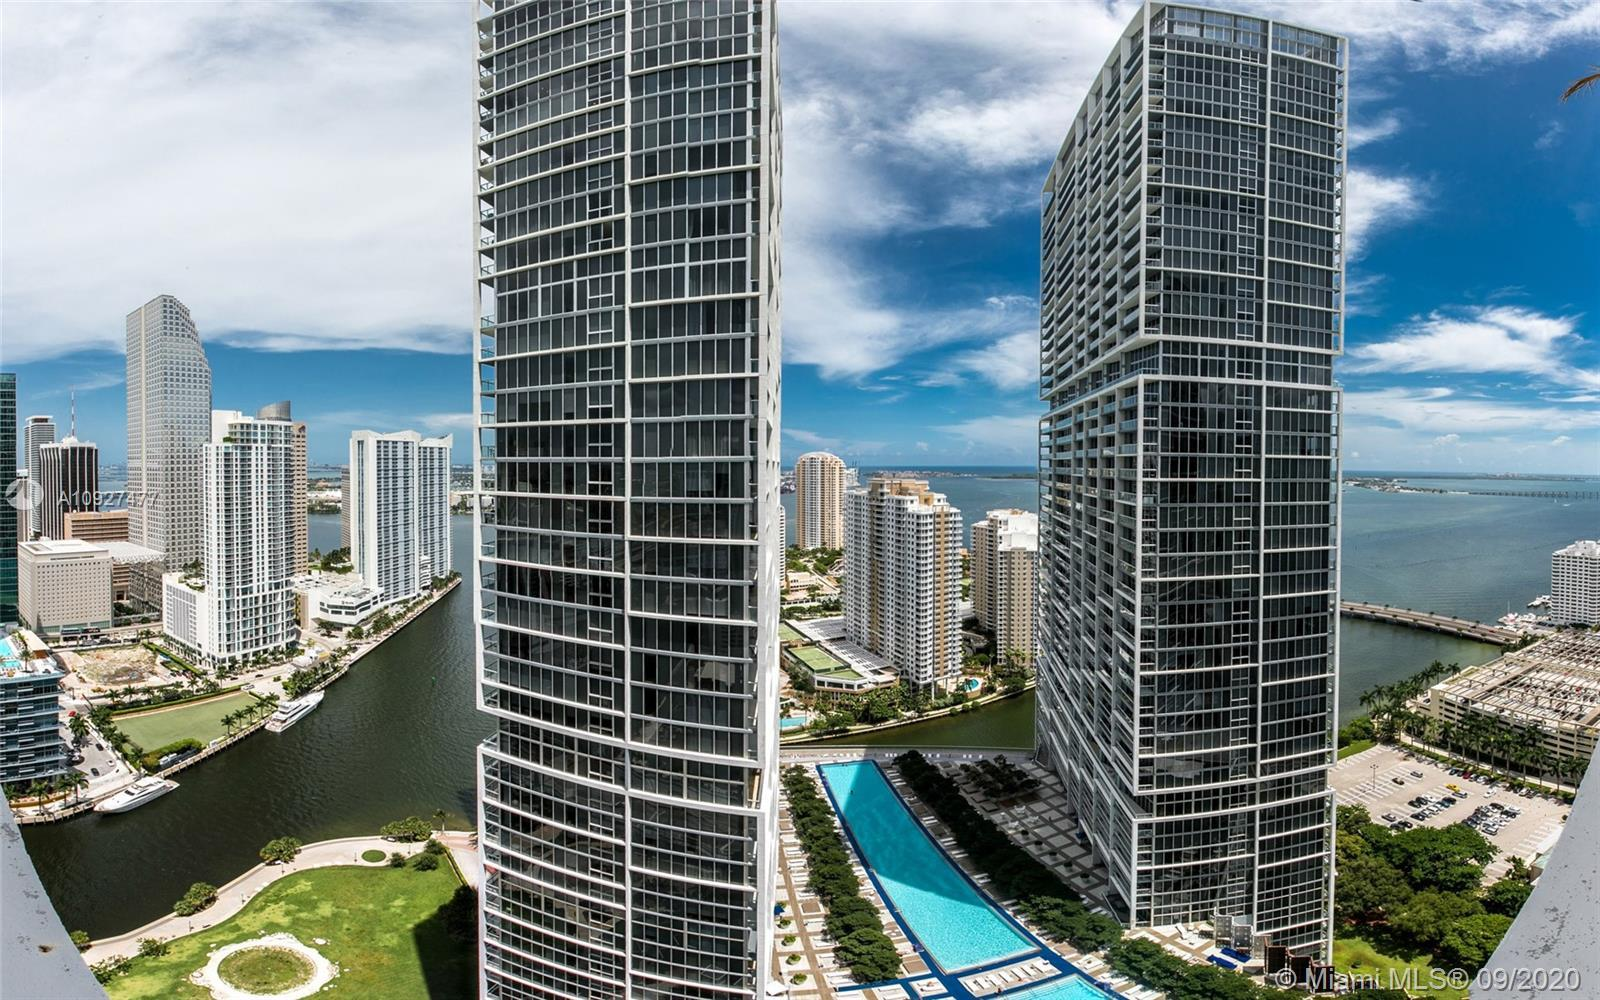 Luxury 1-bedroom with east exposure and 180 degrees views to Biscayne Bay and the Miami River. Turnk